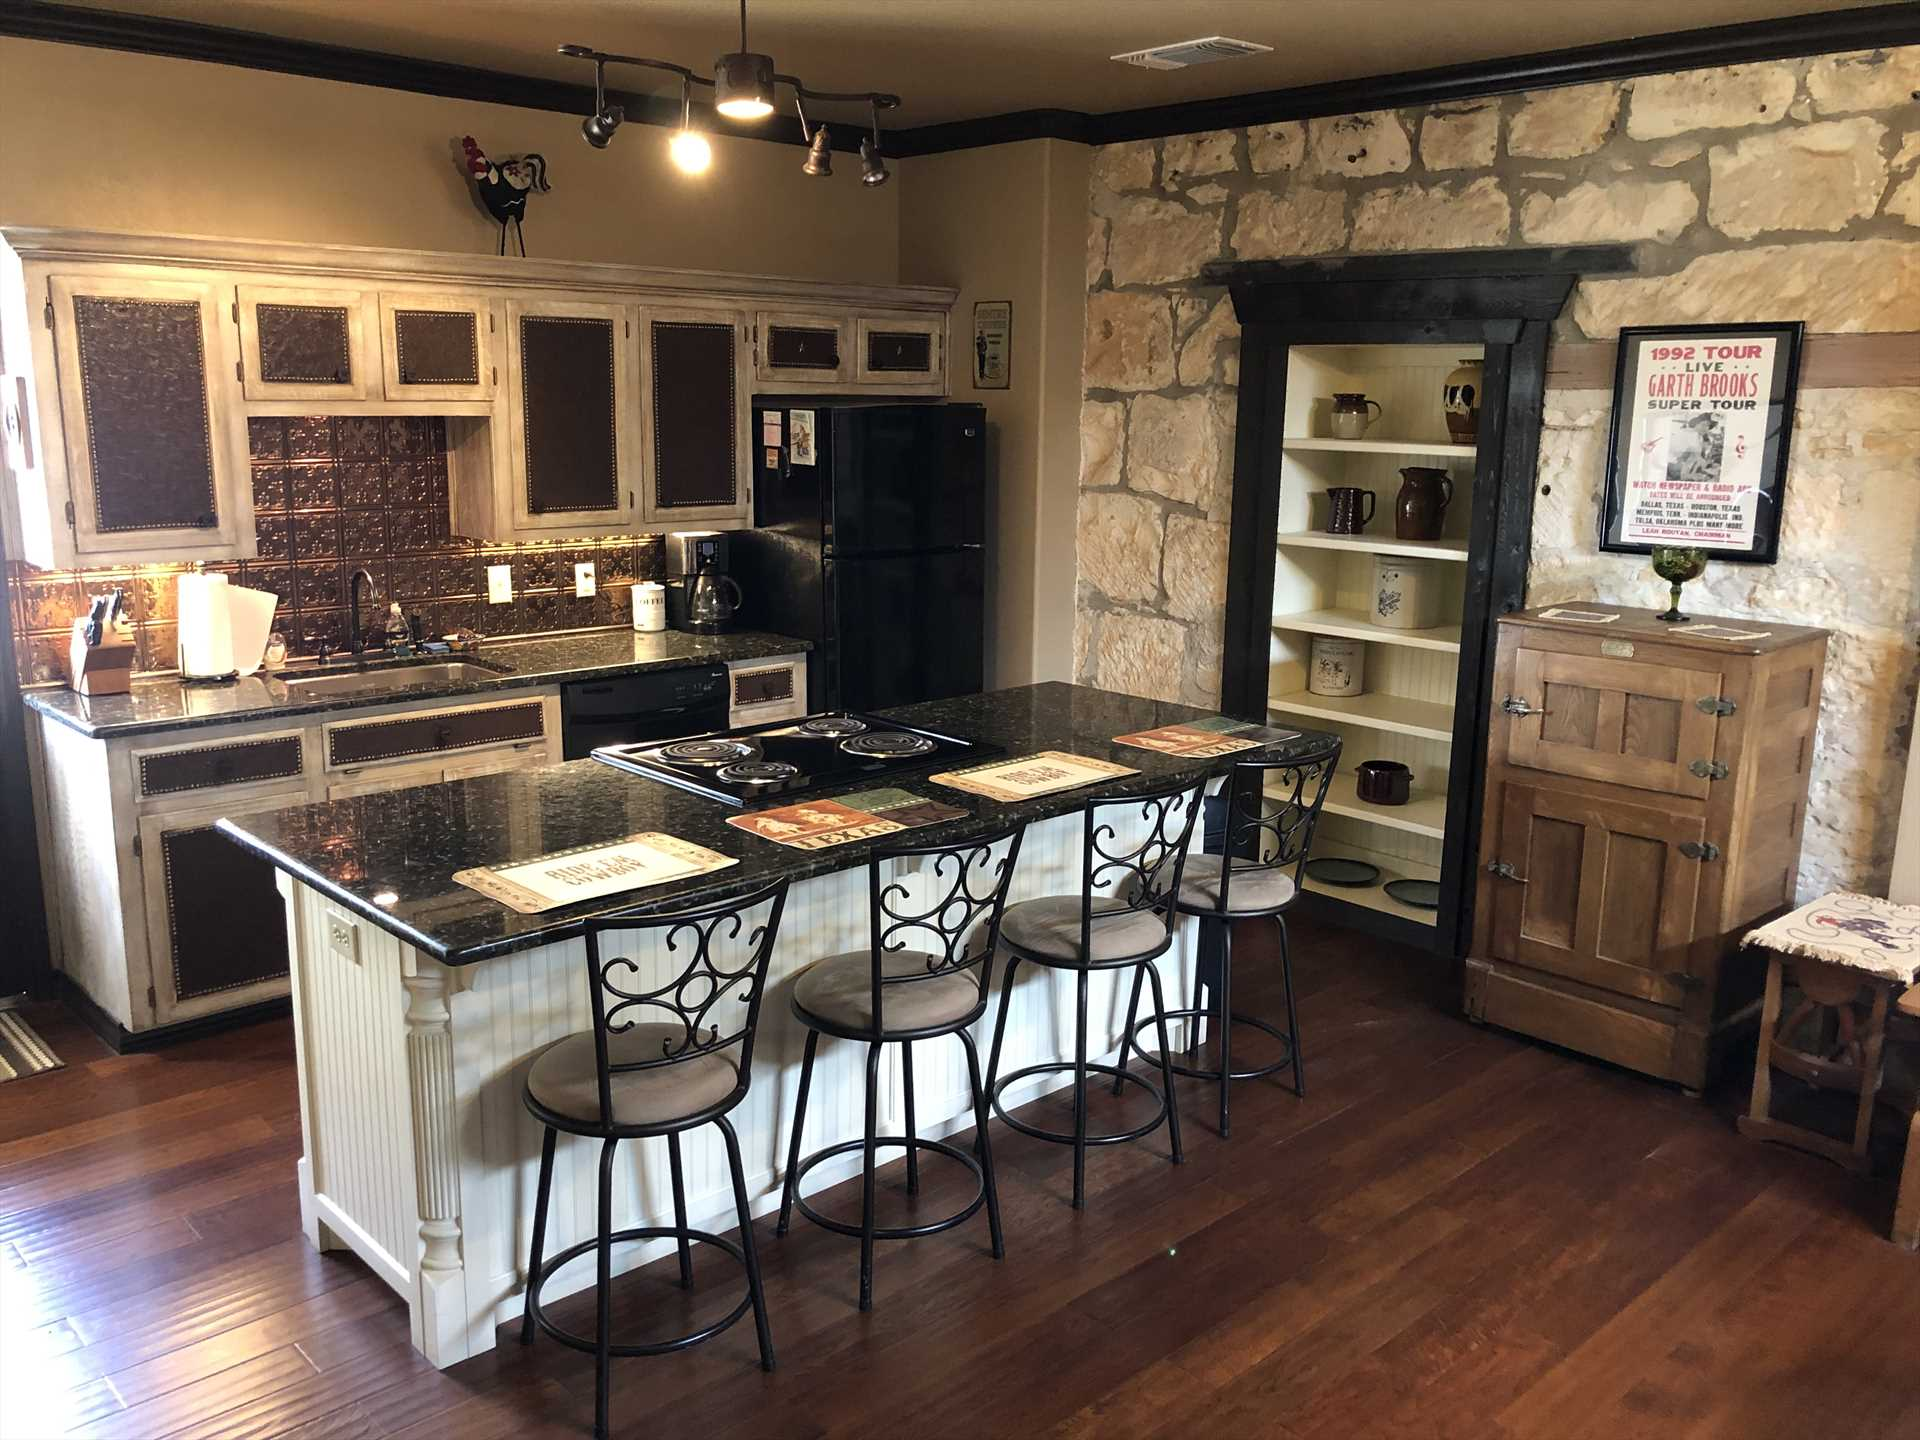 The full kitchen features not only modern appliances, but all the cooking ware, utensils, glasses, and serving ware you'll need. There's also a sweet-looking bar area with seating for four!